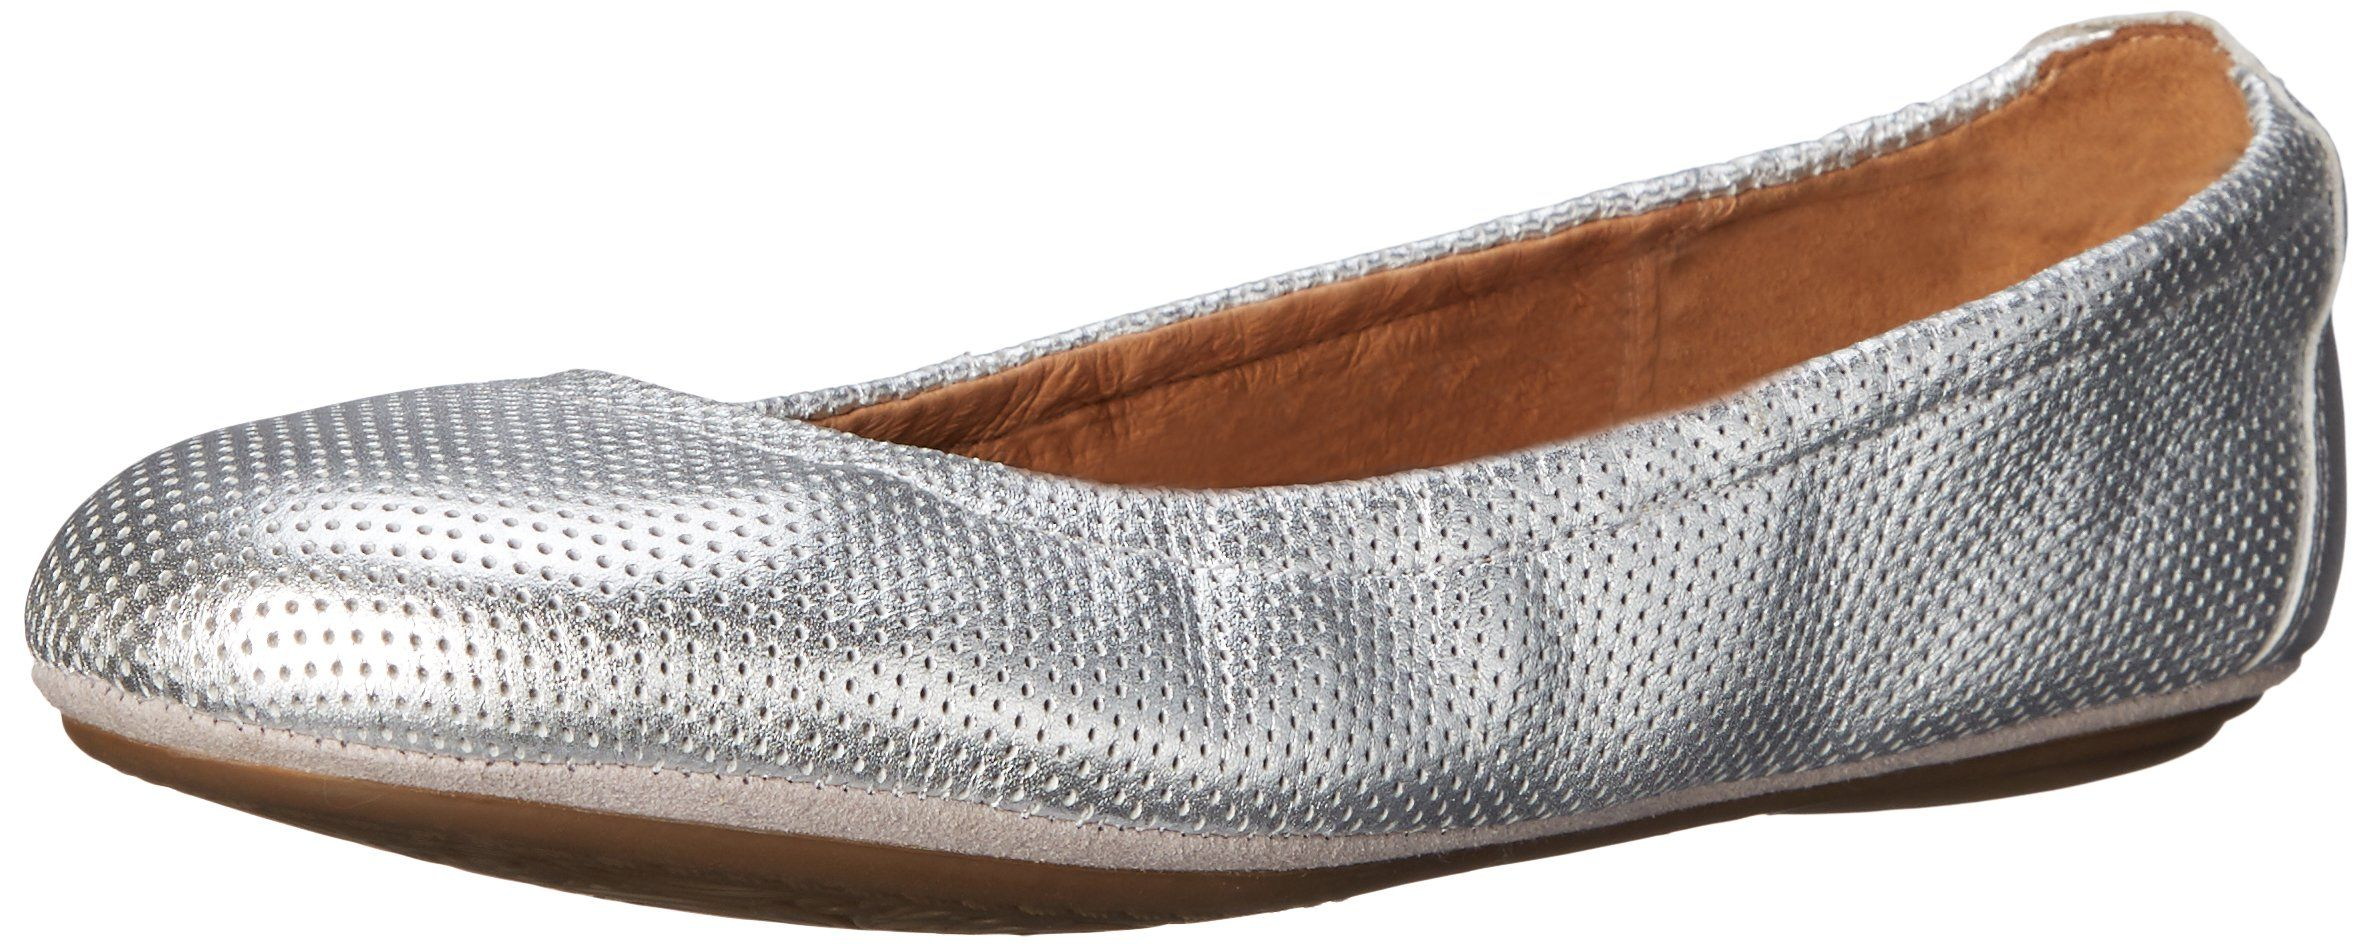 Clarks Women's Grayson Erica Ballet Flat, Silver Perfed Leather, 7.5 M US.  Cushion